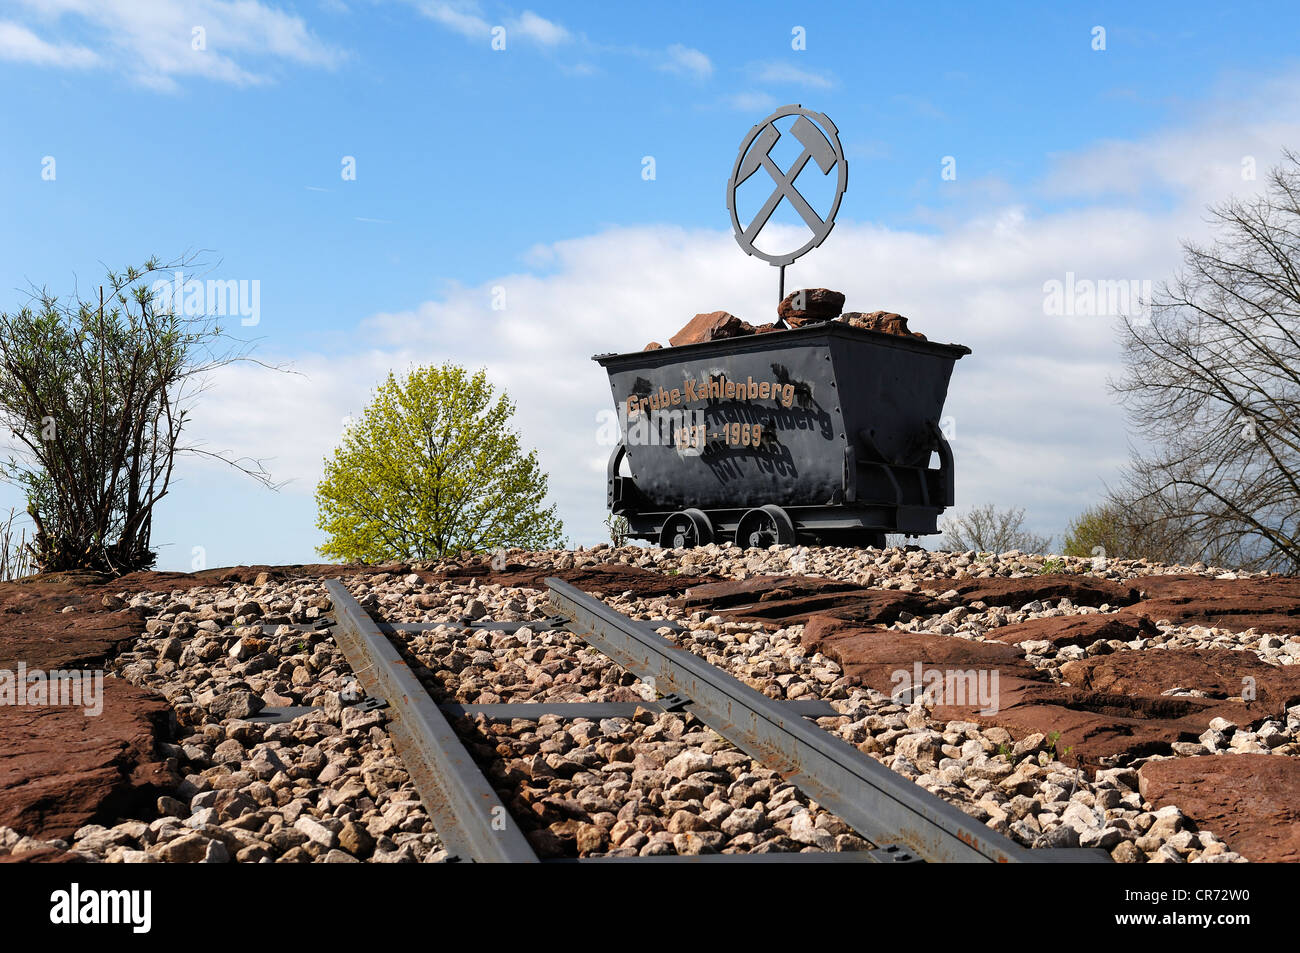 Lorry as a reminder of the Grube Kahlenberg mine 1937 - 1969 on a roundabout, Ringsheim, Baden-Wuerttemberg, Germany, - Stock Image